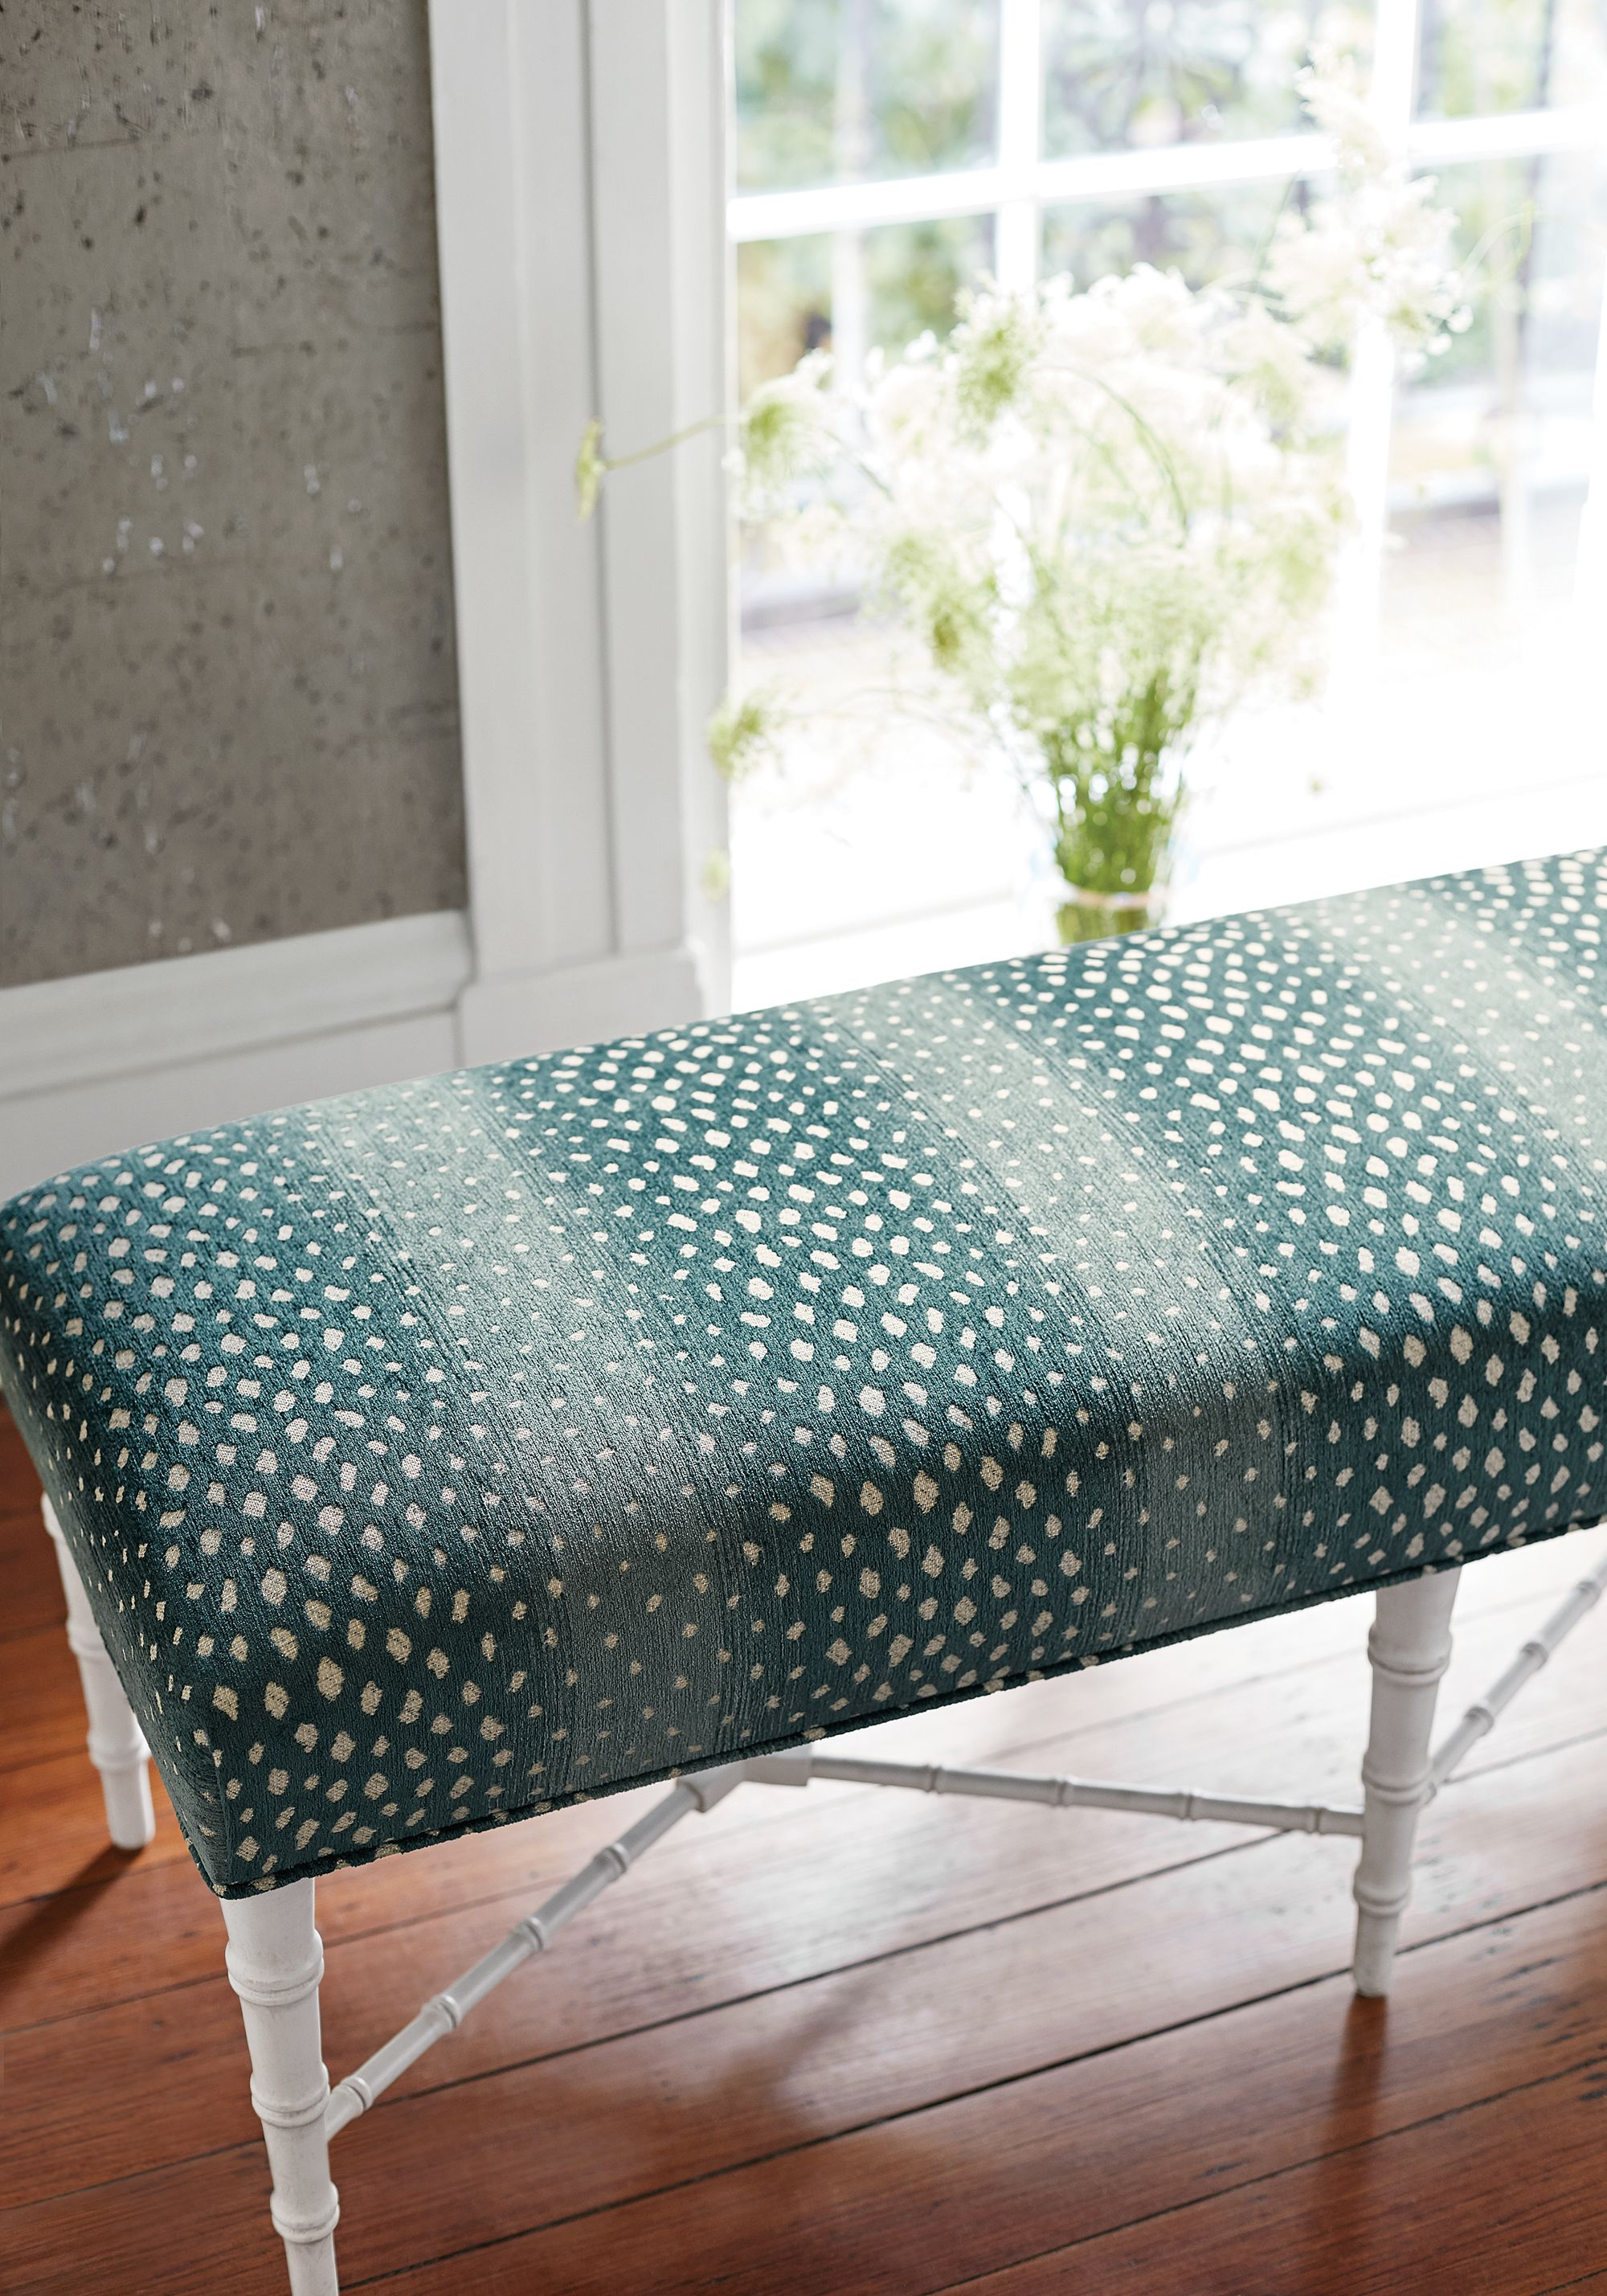 Eaton Ottoman Bench from Thibaut Fine Furniture in Gazelle woven ...